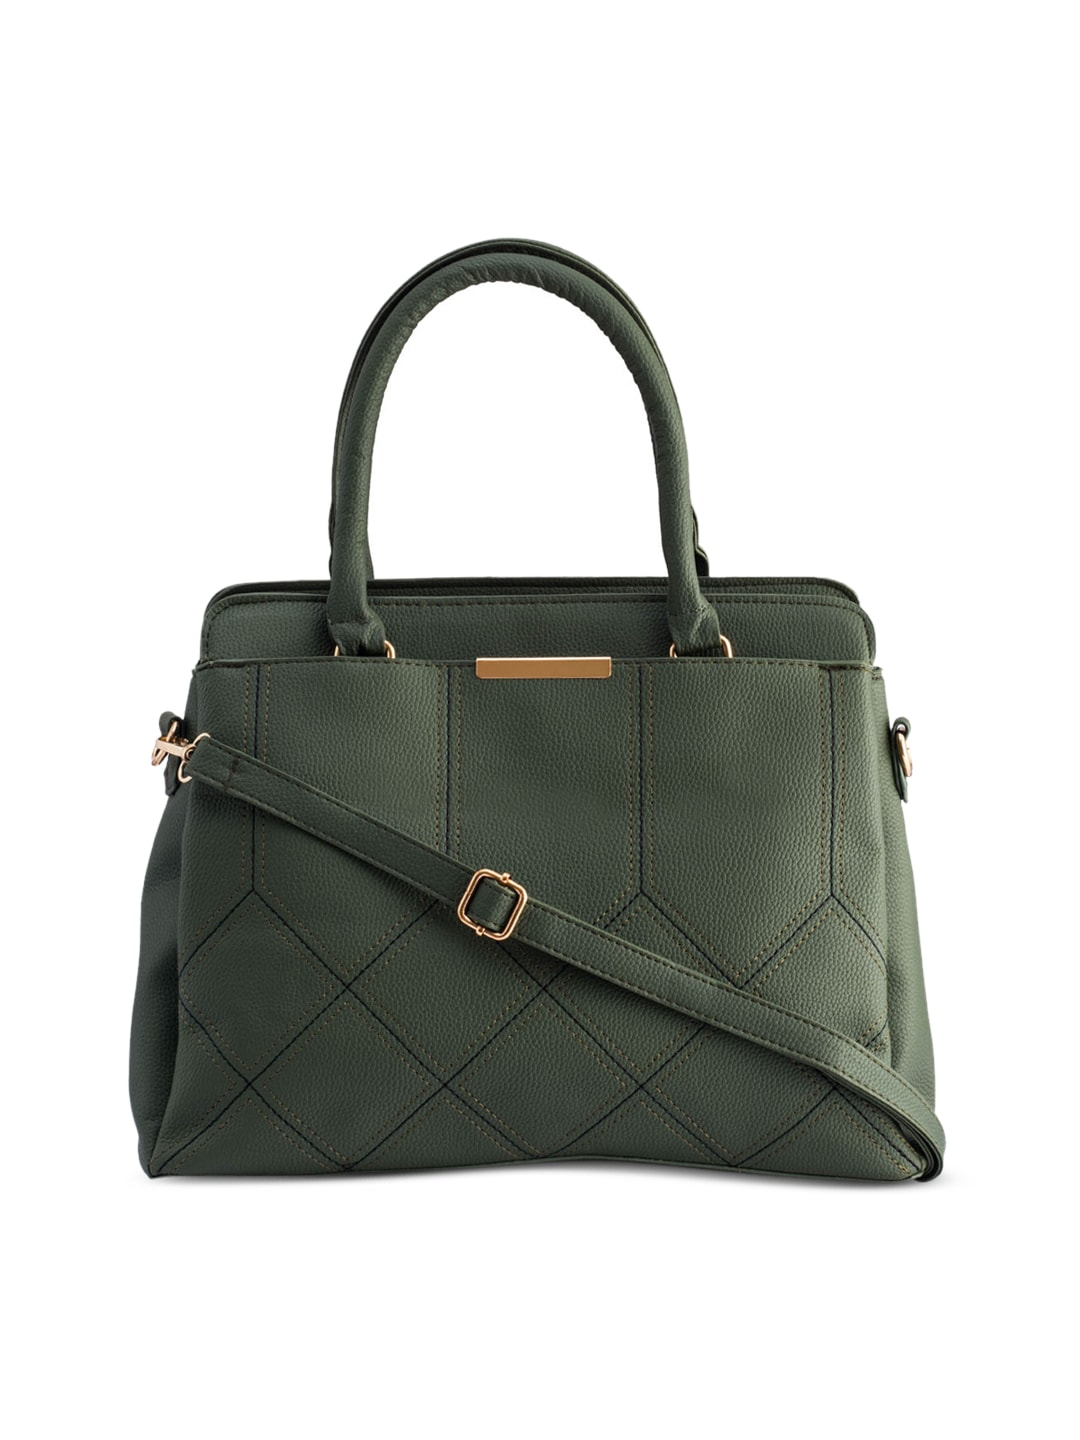 c15221f6ac7a Olive Green Handbags - Buy Olive Green Handbags online in India